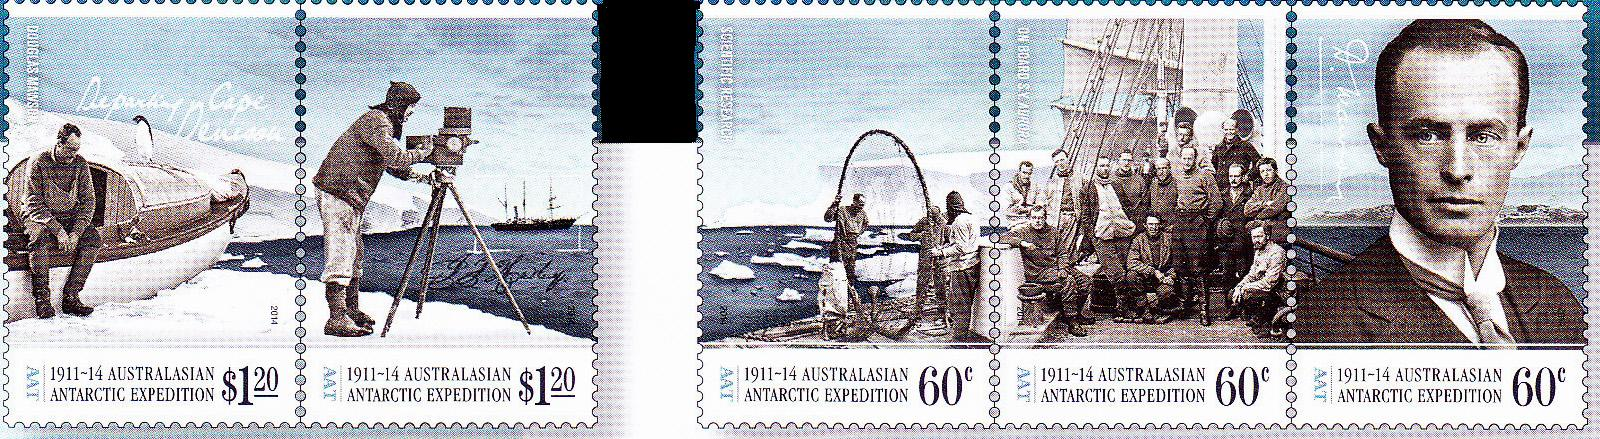 AAT Australian Antarctic  2014  1911-1914 AUSTRALASIAN EXPEDITION  1914 HOMEWARD BOUND Stamps Covers